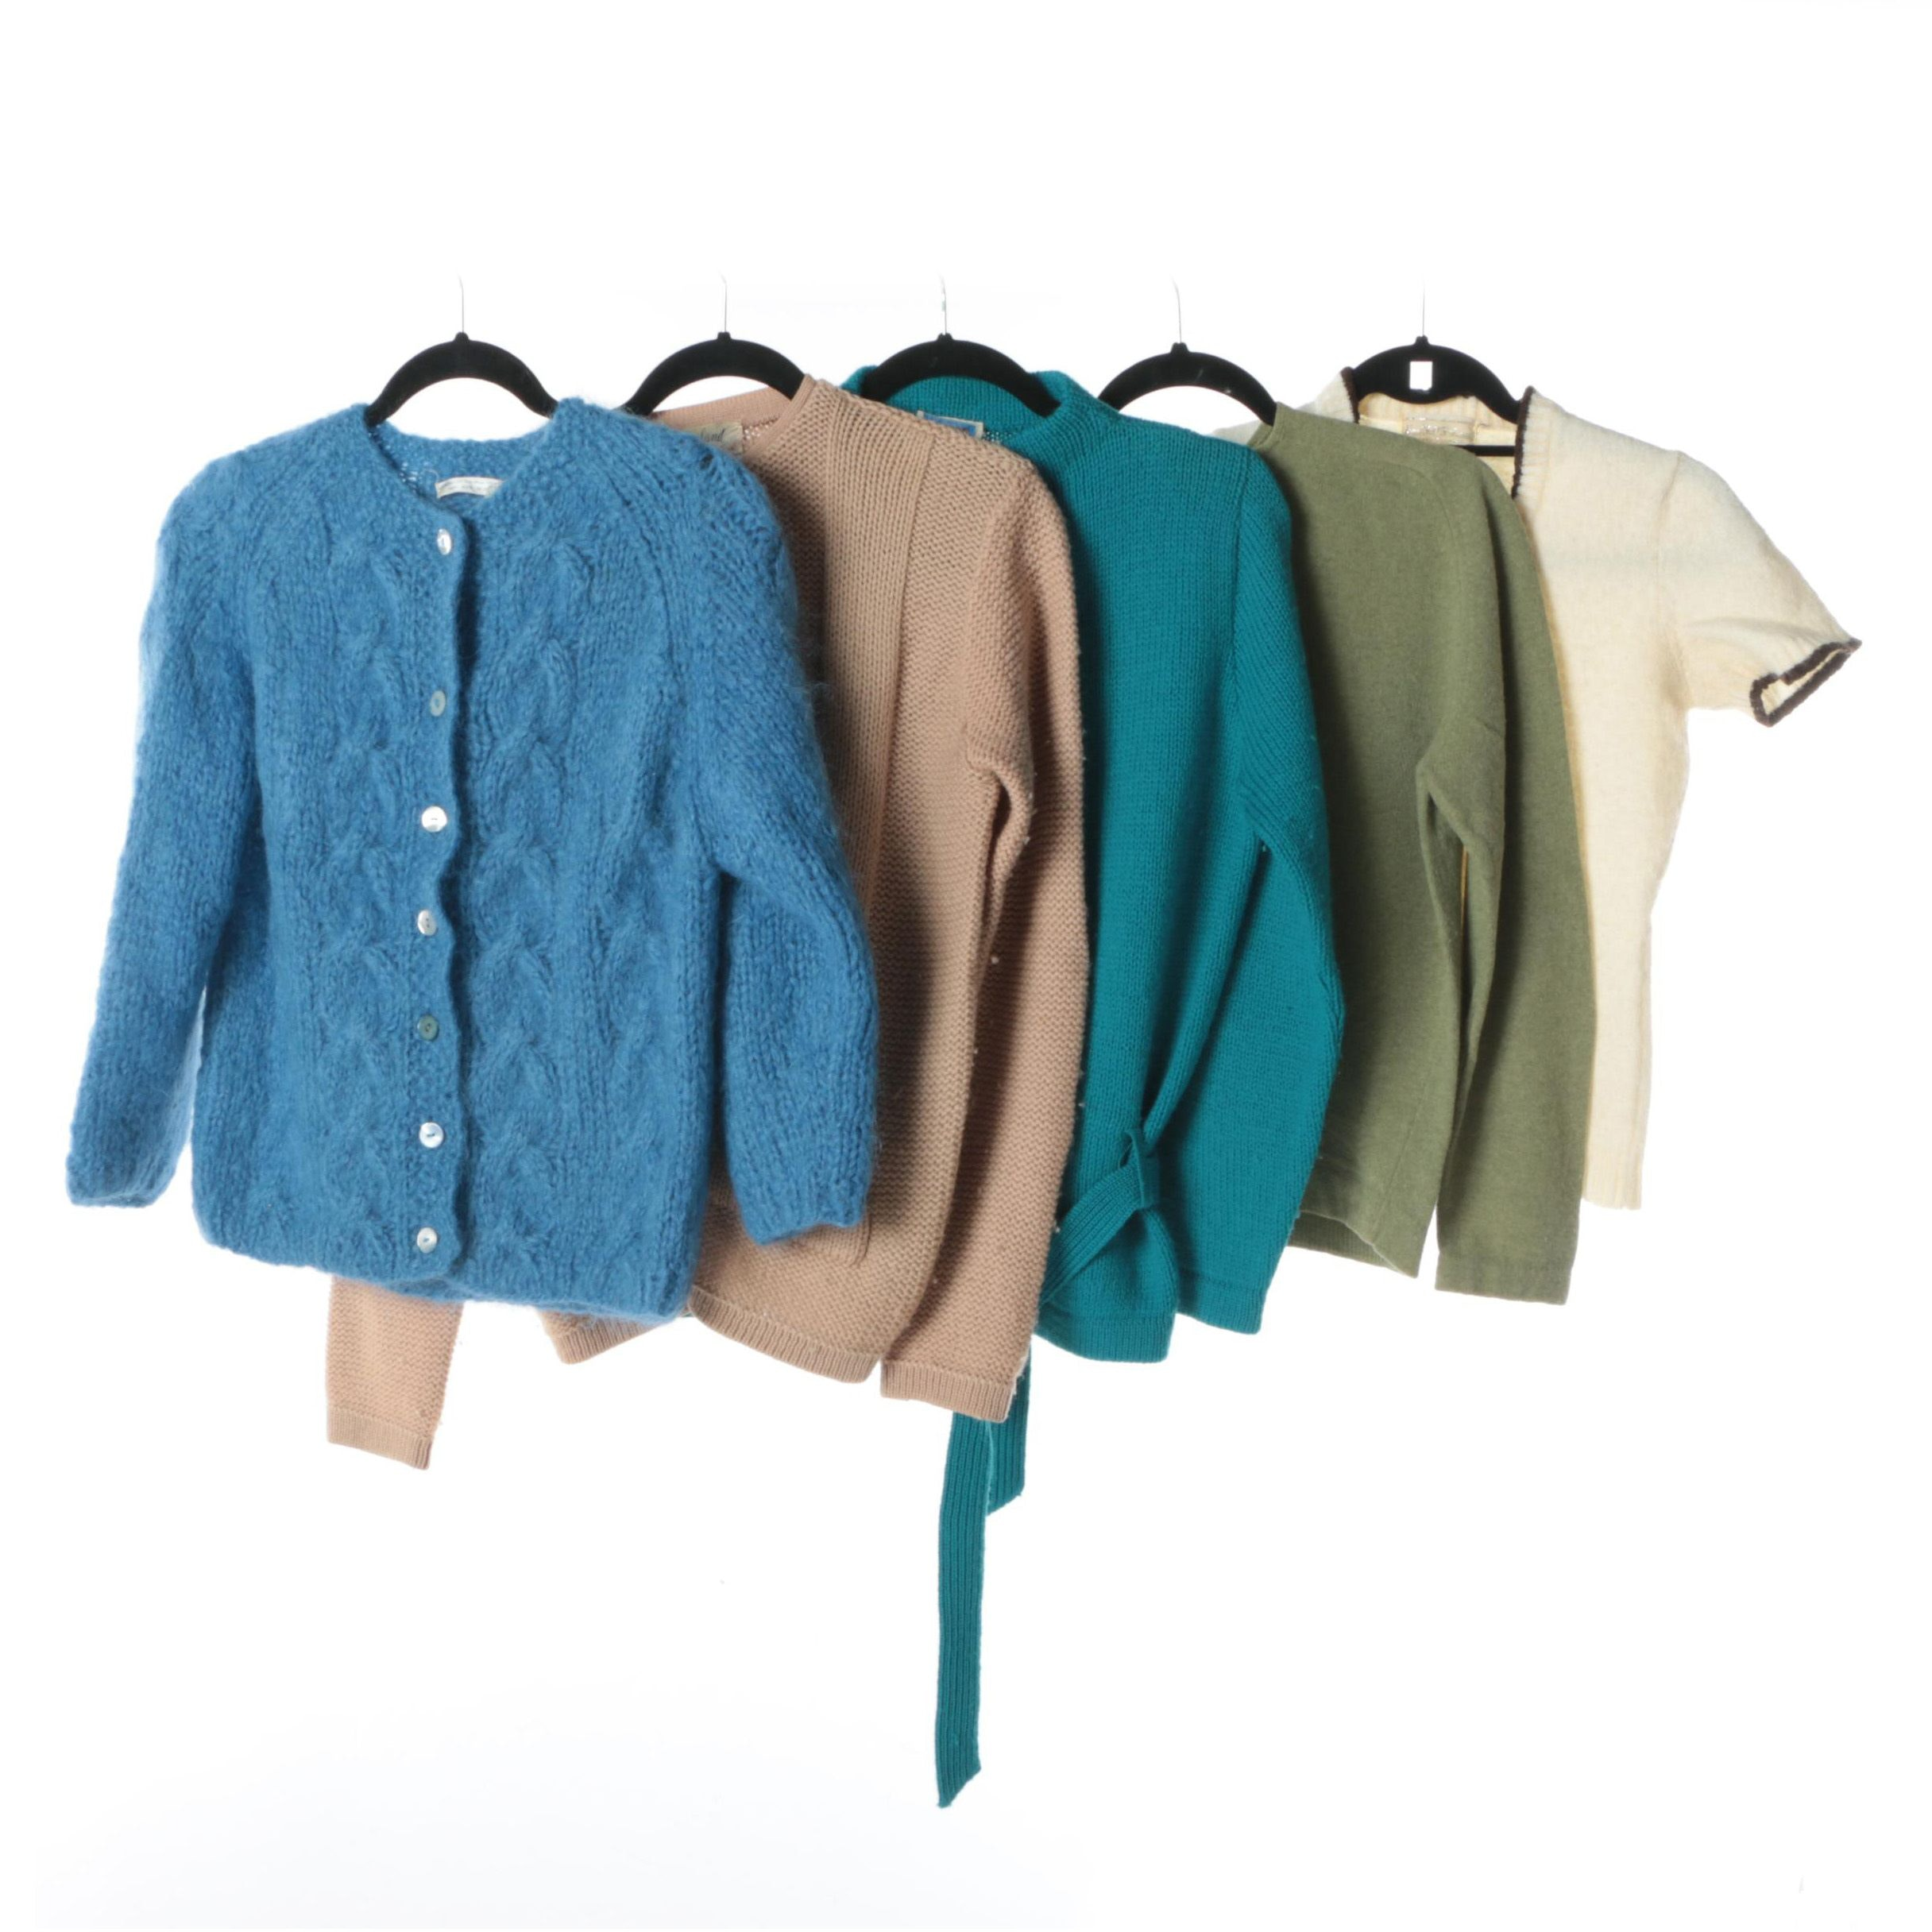 Women's Vintage Sweaters and Cardigans Including Woodward & Lothrop